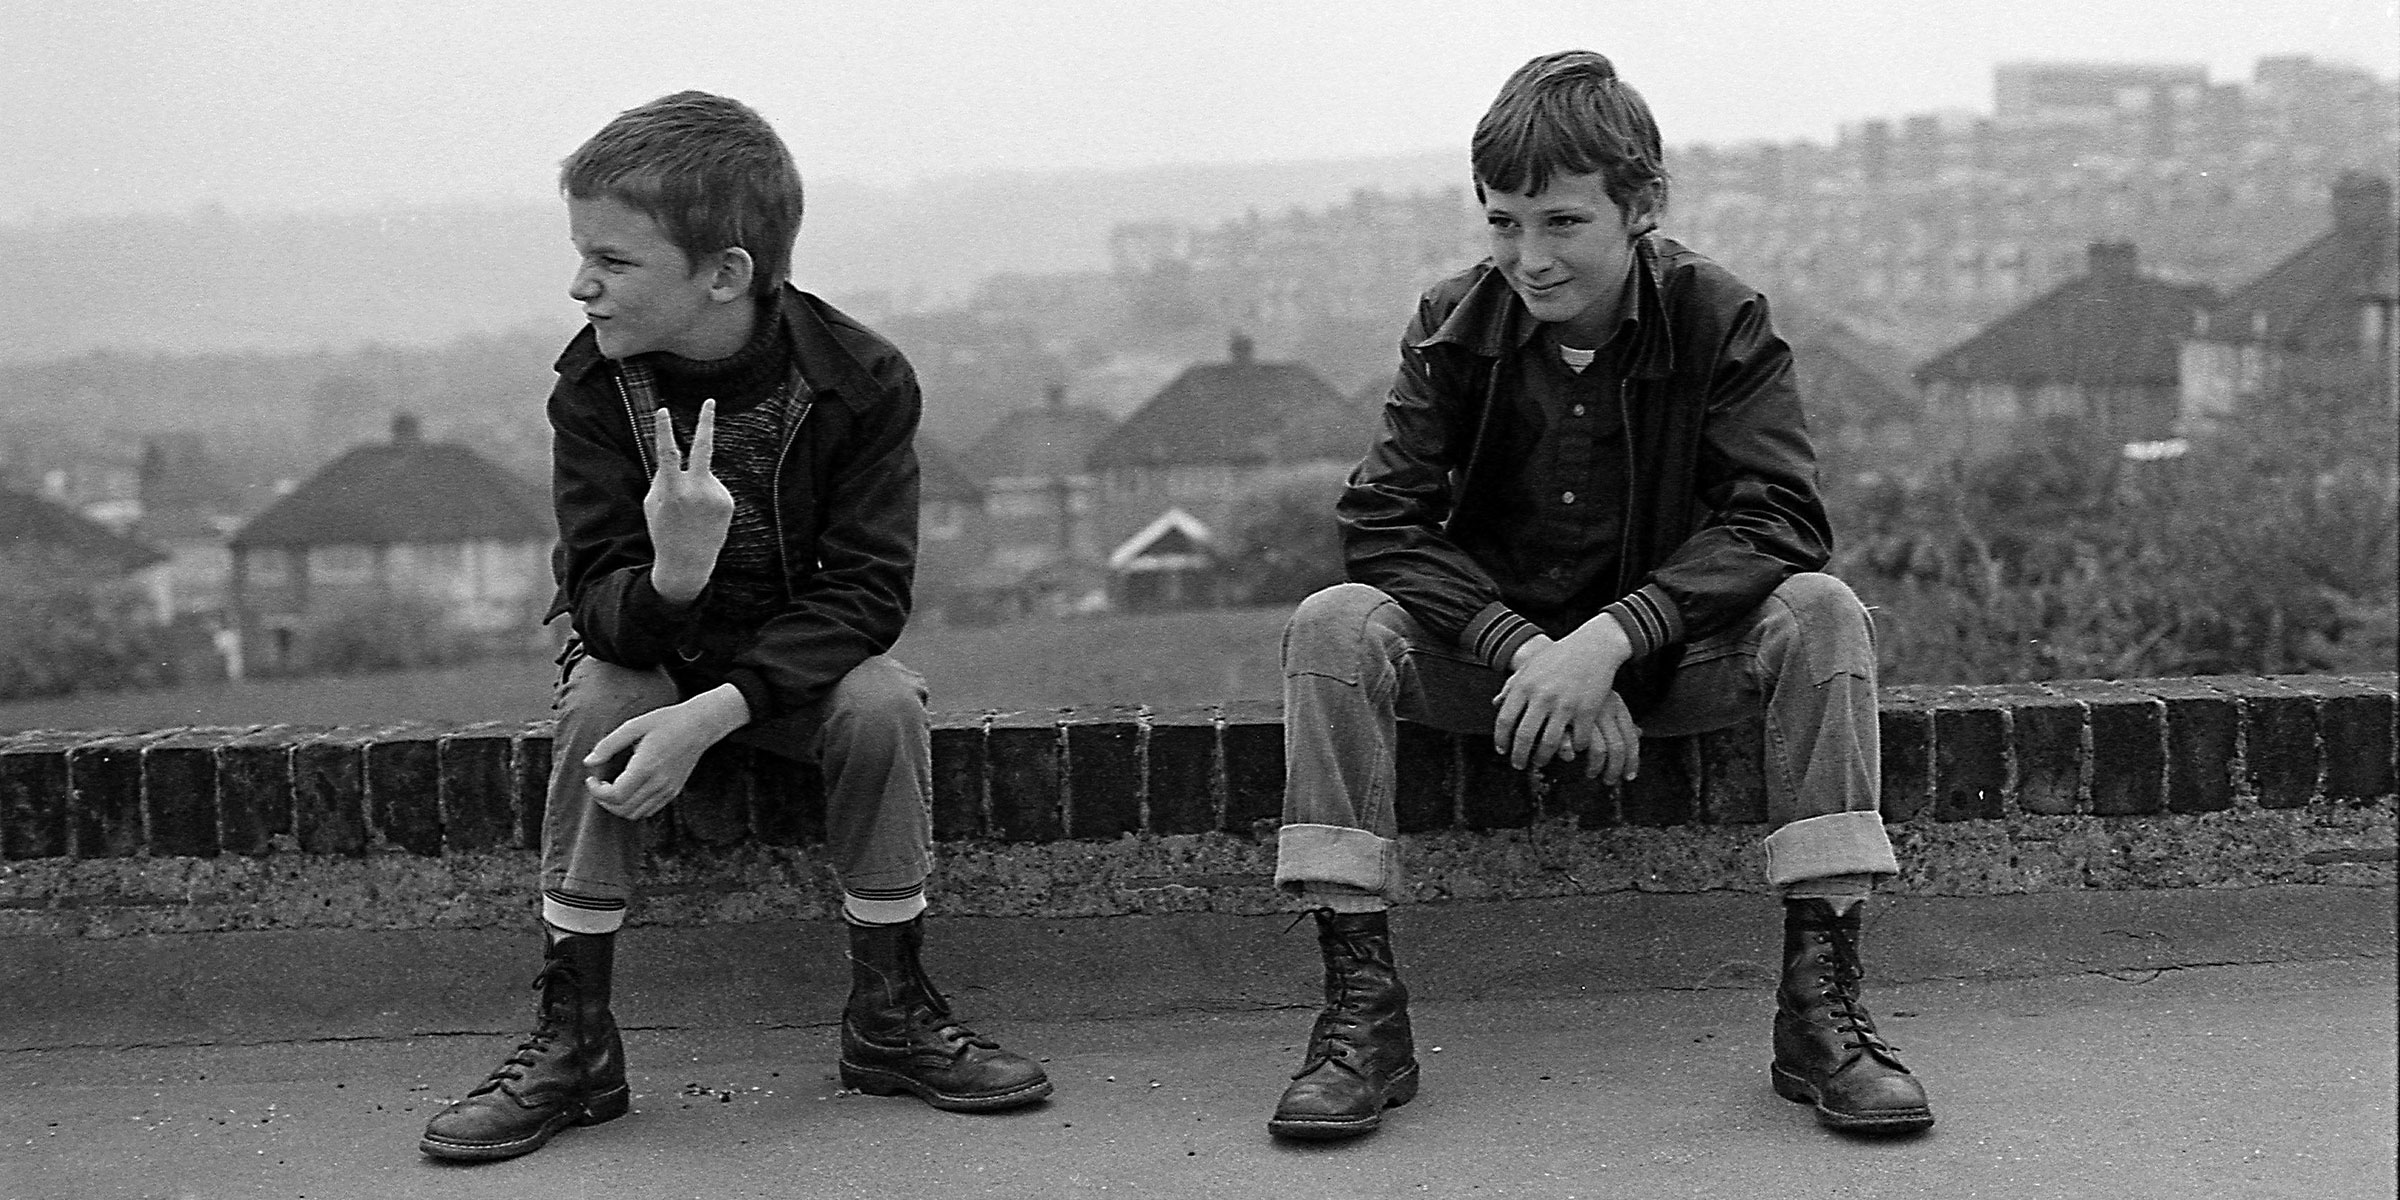 Gavin WATSON \'Neville and Gary up the local park\' 1980, Black and white photograph on gloss paper, Courtesy of the artist